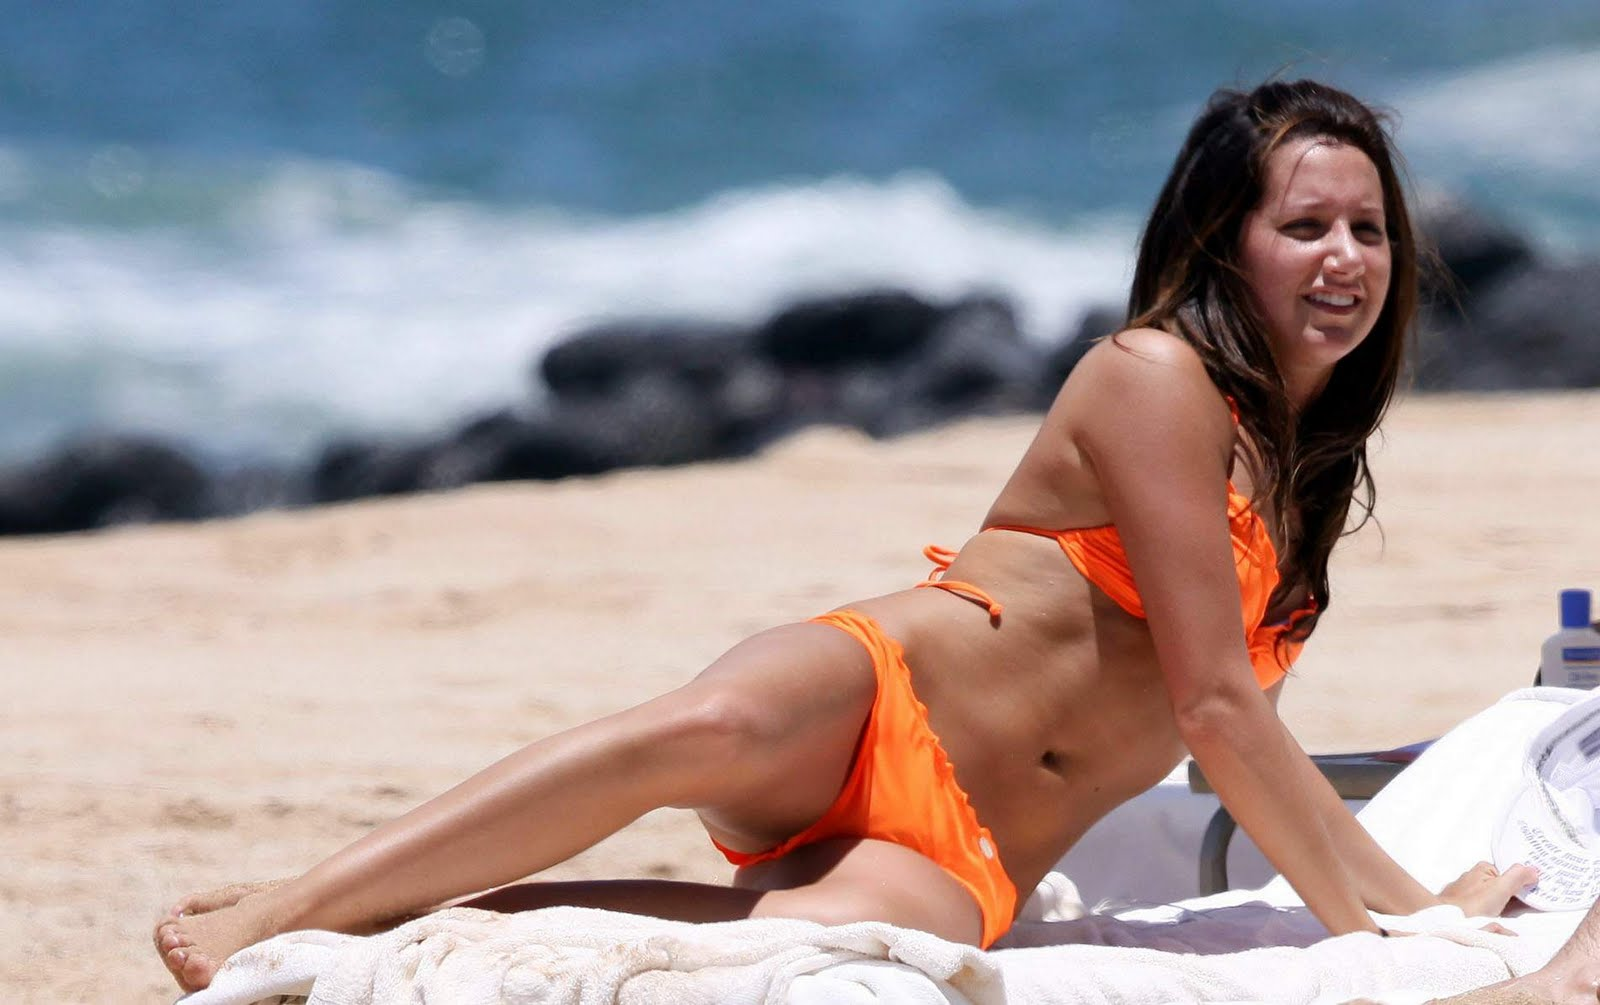 Men have ashley tisdale nude orange bikini